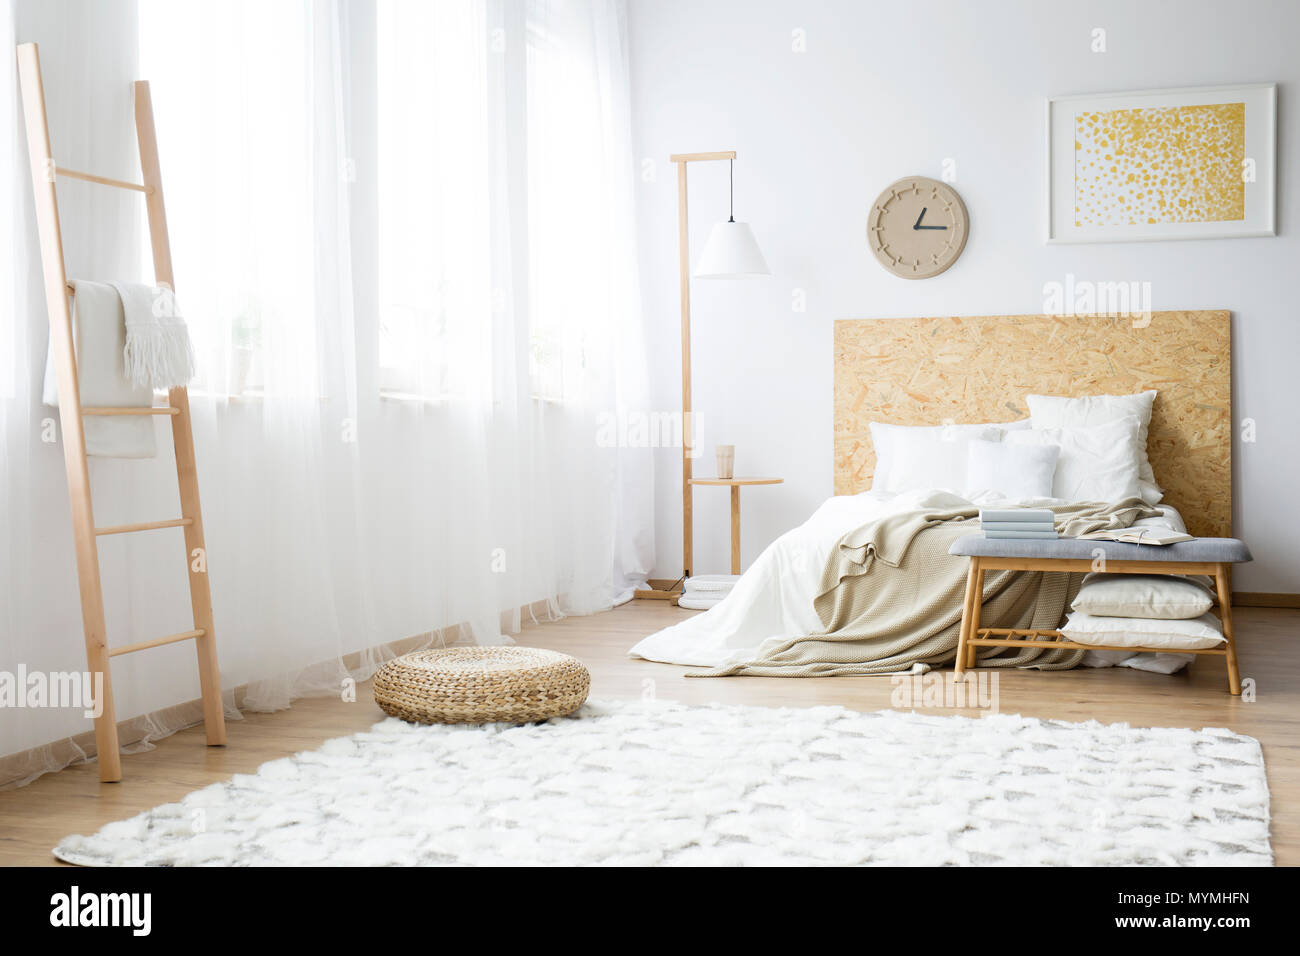 Modern clock hanging over a double bed filled with pillows in a white bedroom interior - Stock Image